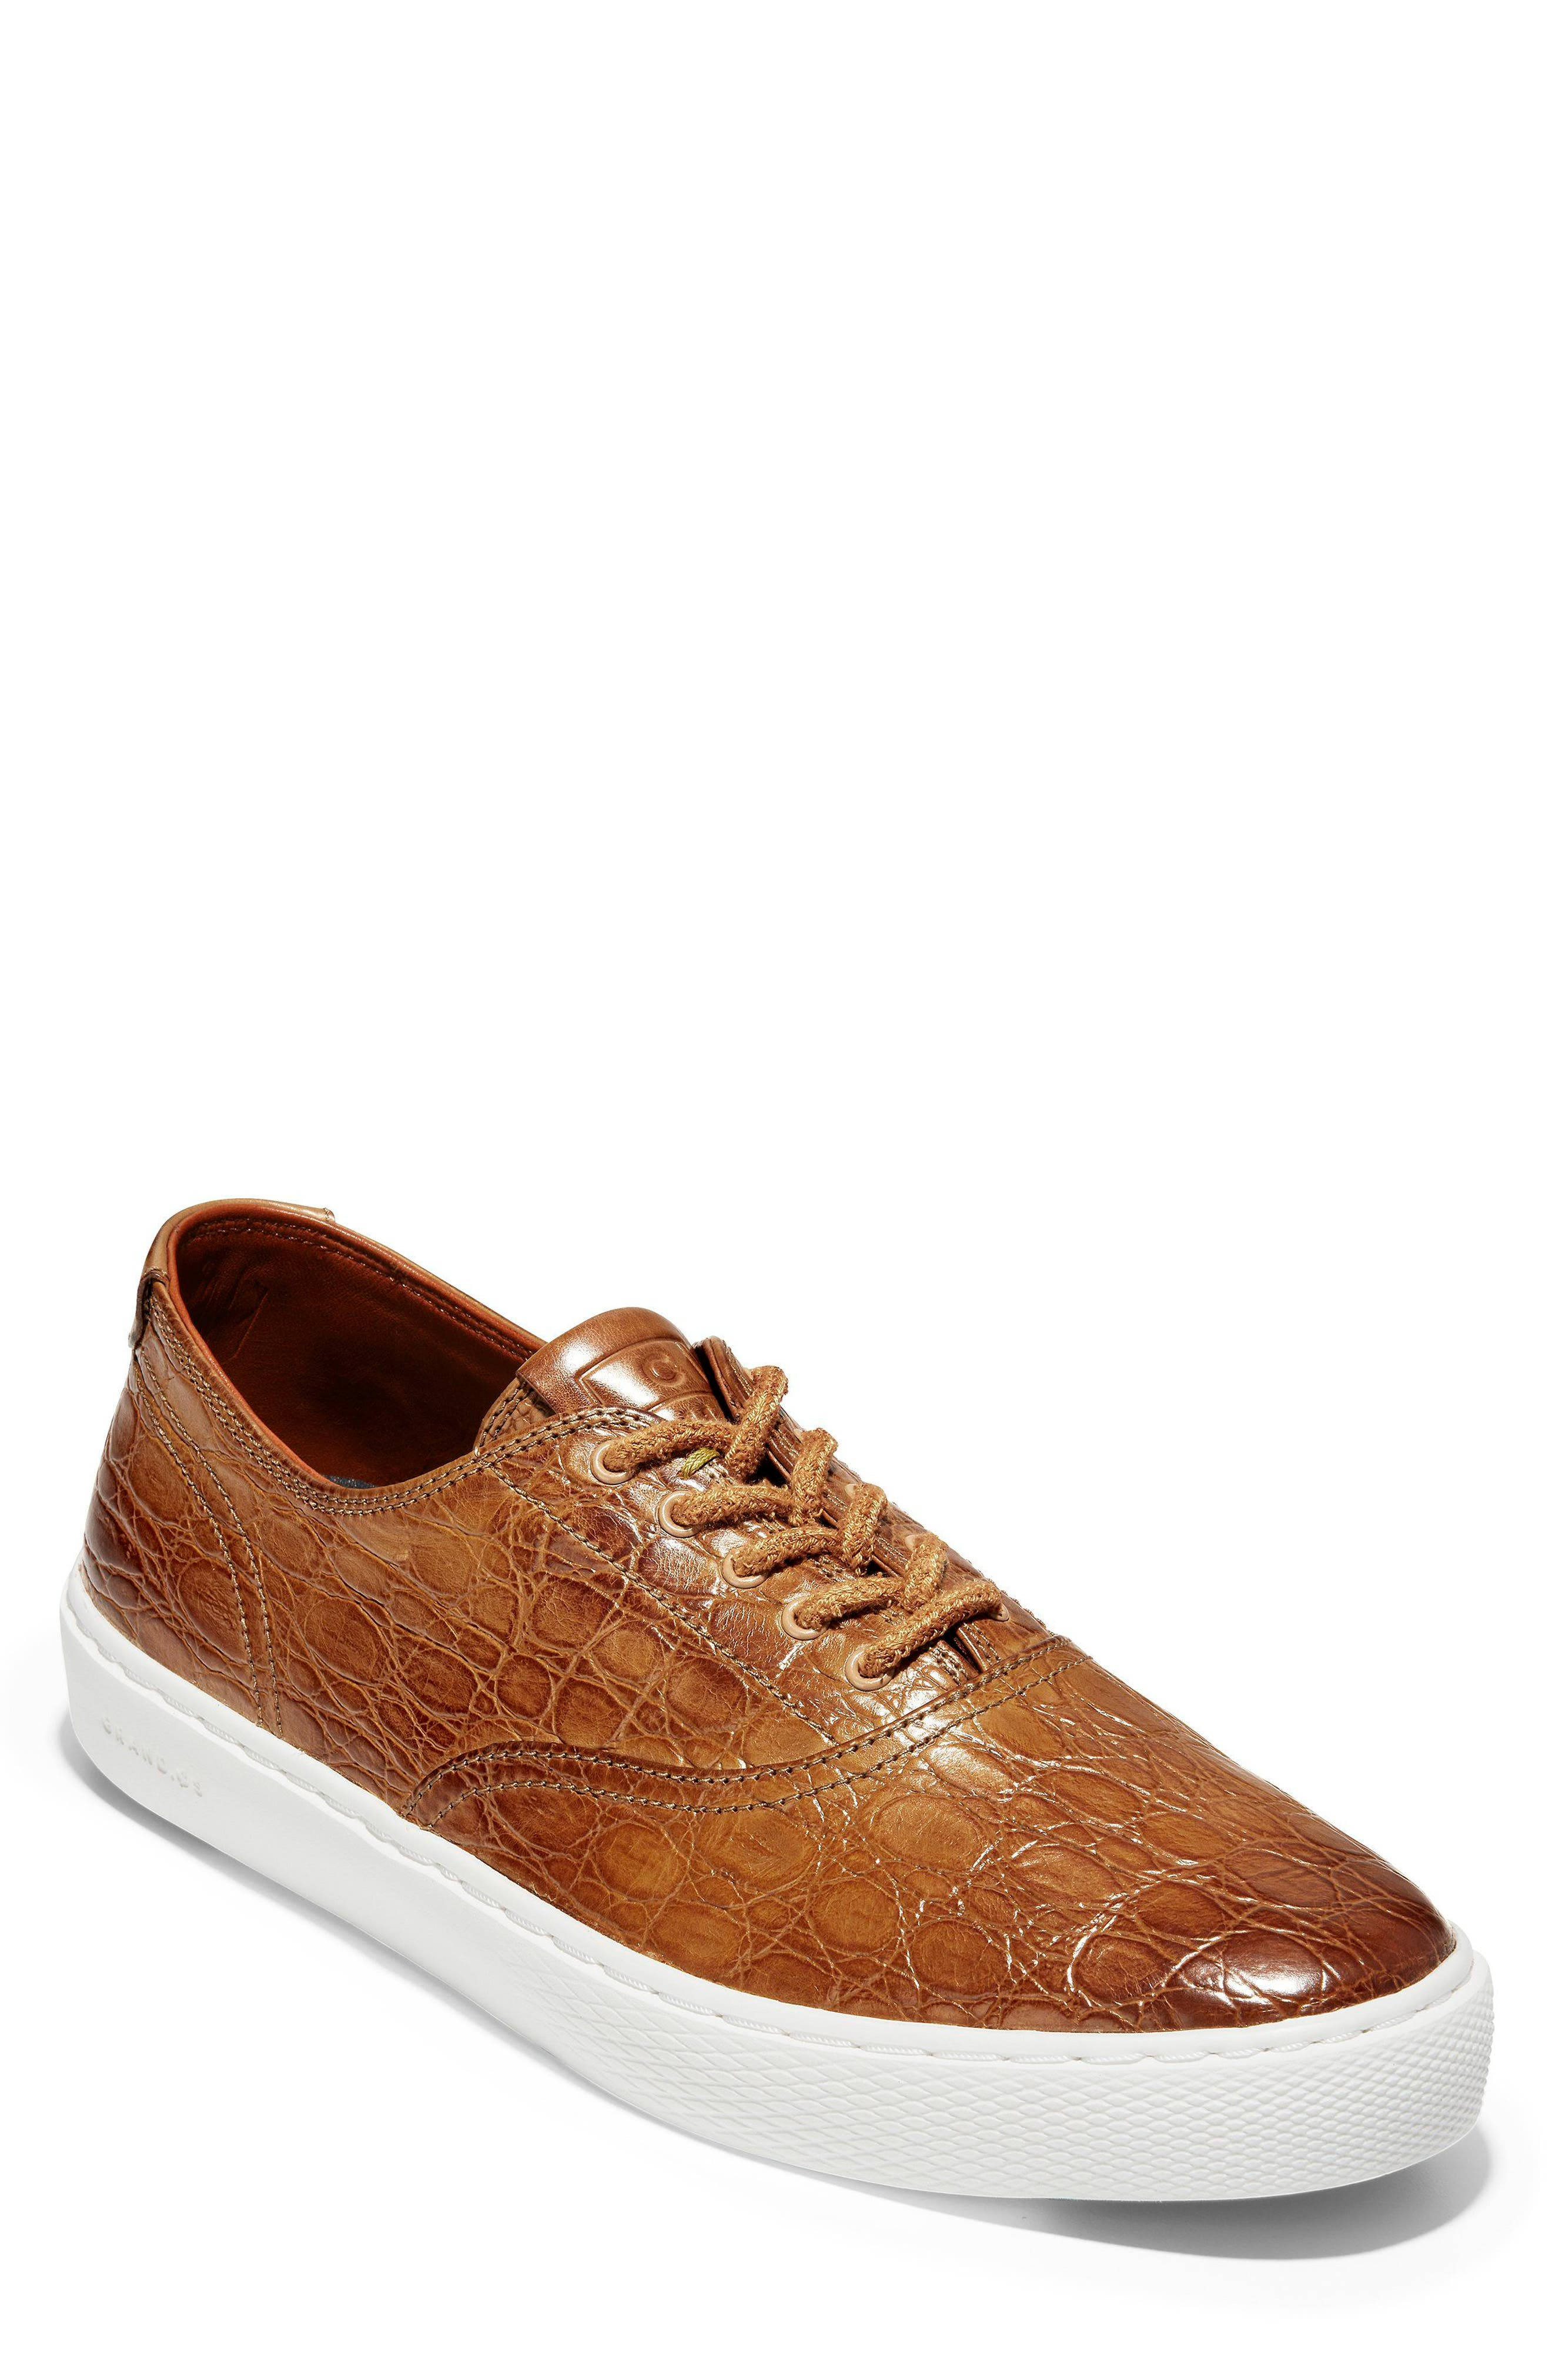 GrandPro Deck Low Top Sneaker,                             Main thumbnail 1, color,                             Brown/ White Leather